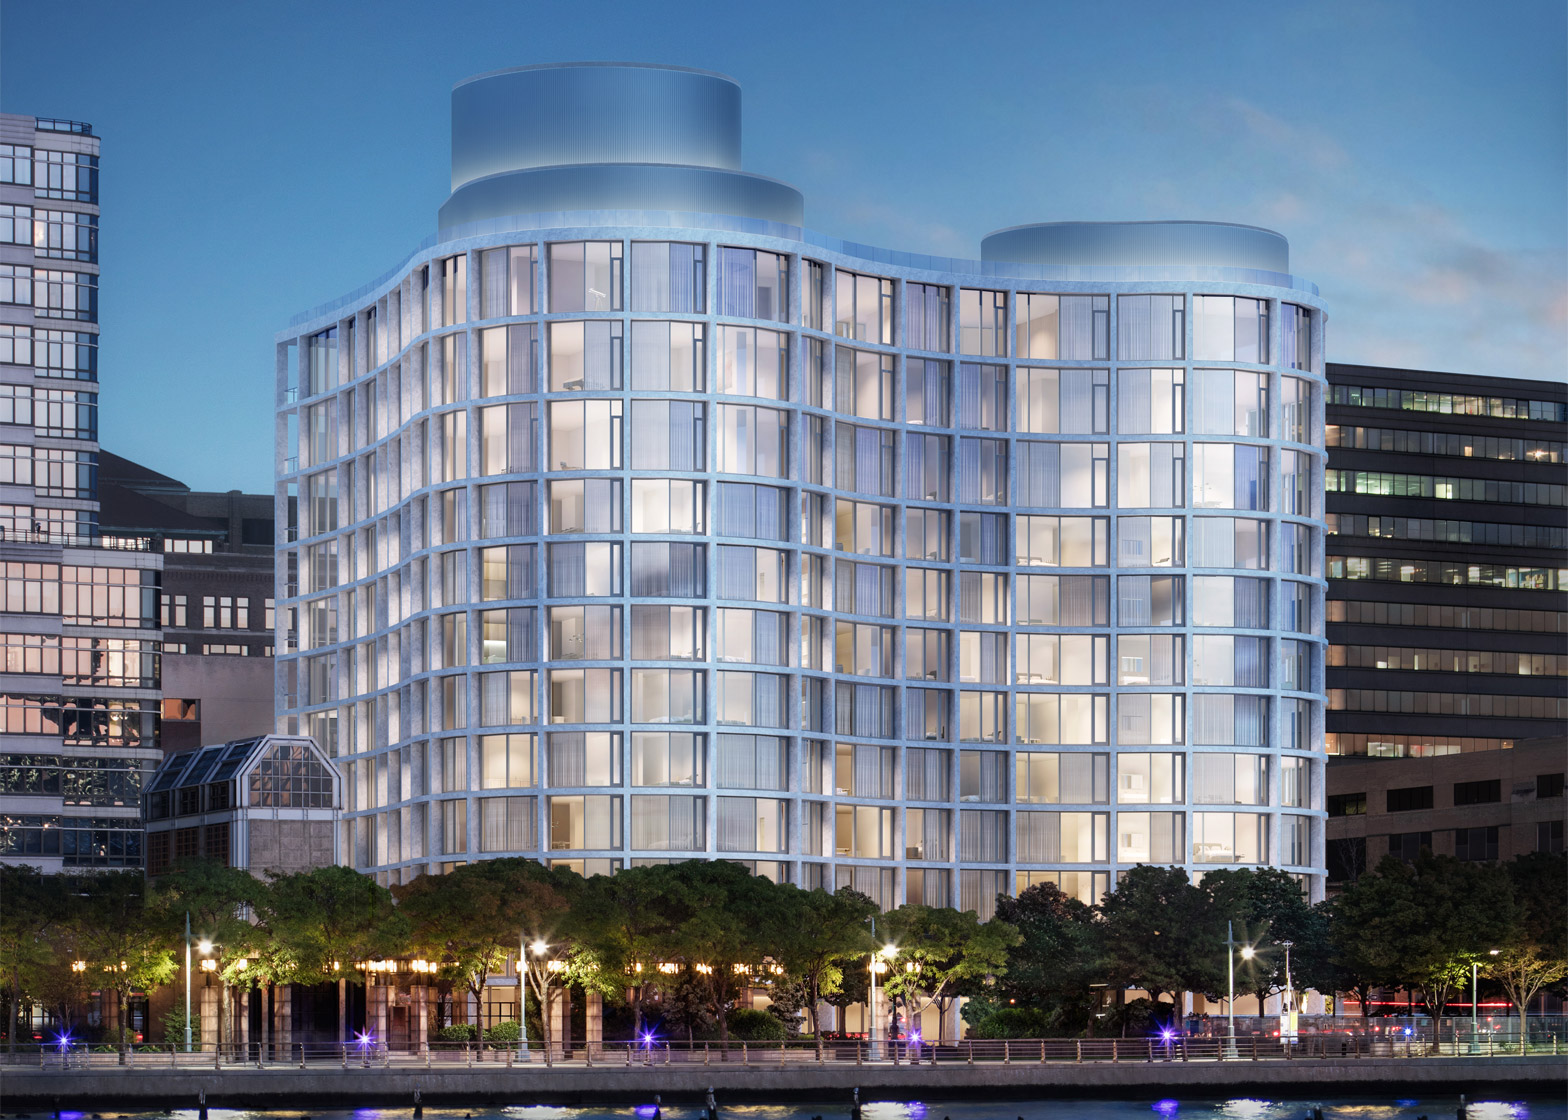 Images Released Of New Herzog De Meuron Building In NYC Enchanting Herzog De Meuron To Design Residential High Rise In London